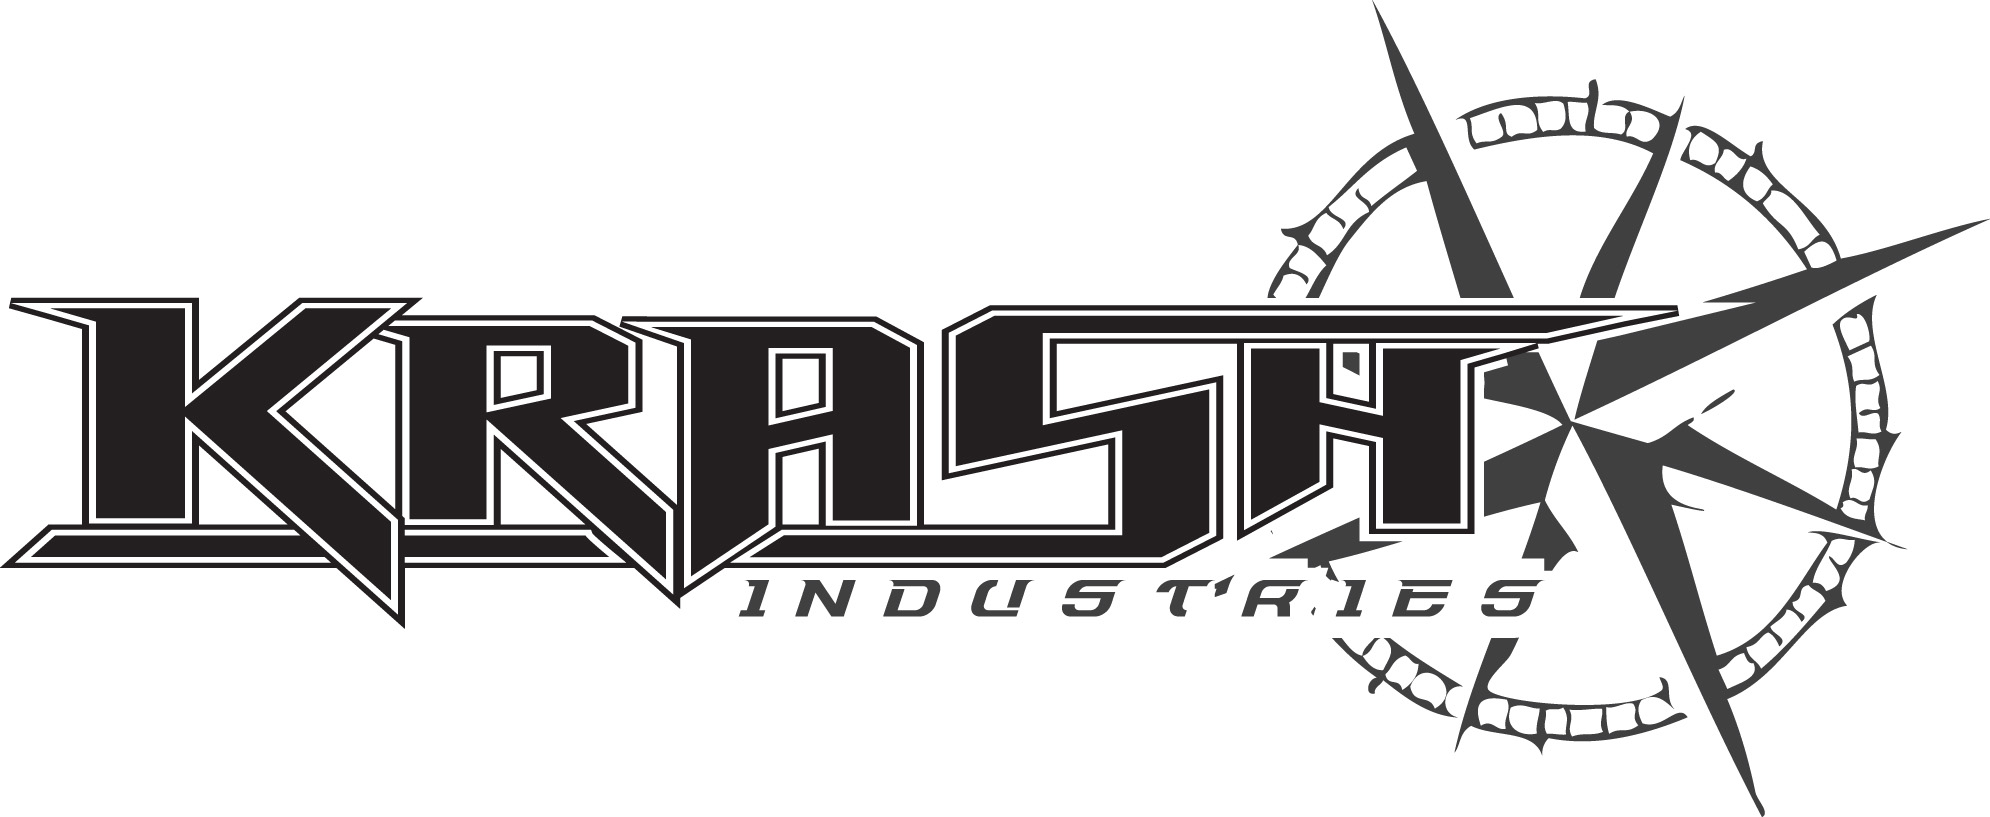 Krash Industries